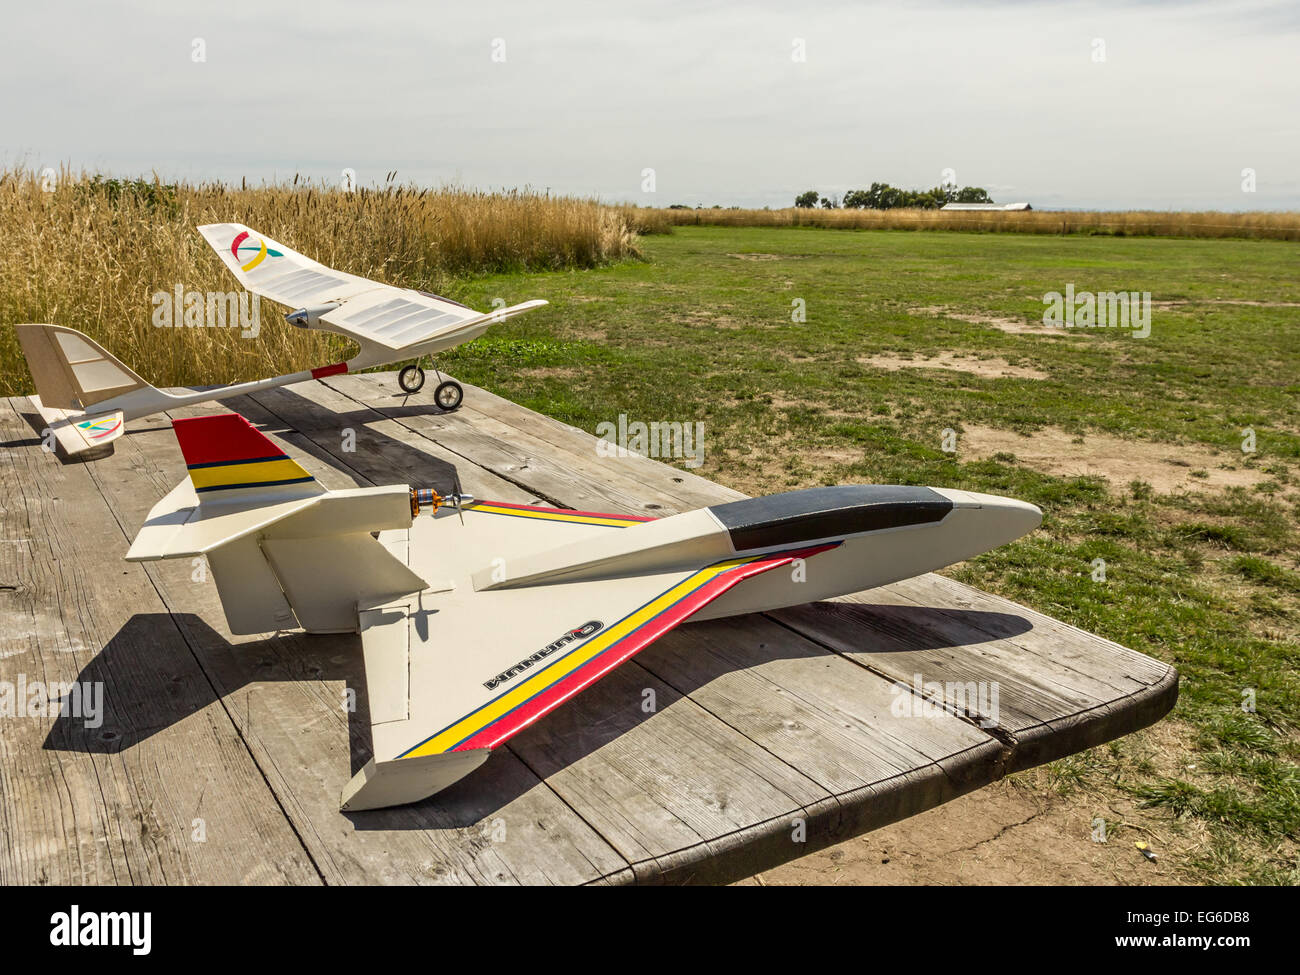 Radio Control (RC) model aeroplanes on field table. - Stock Image